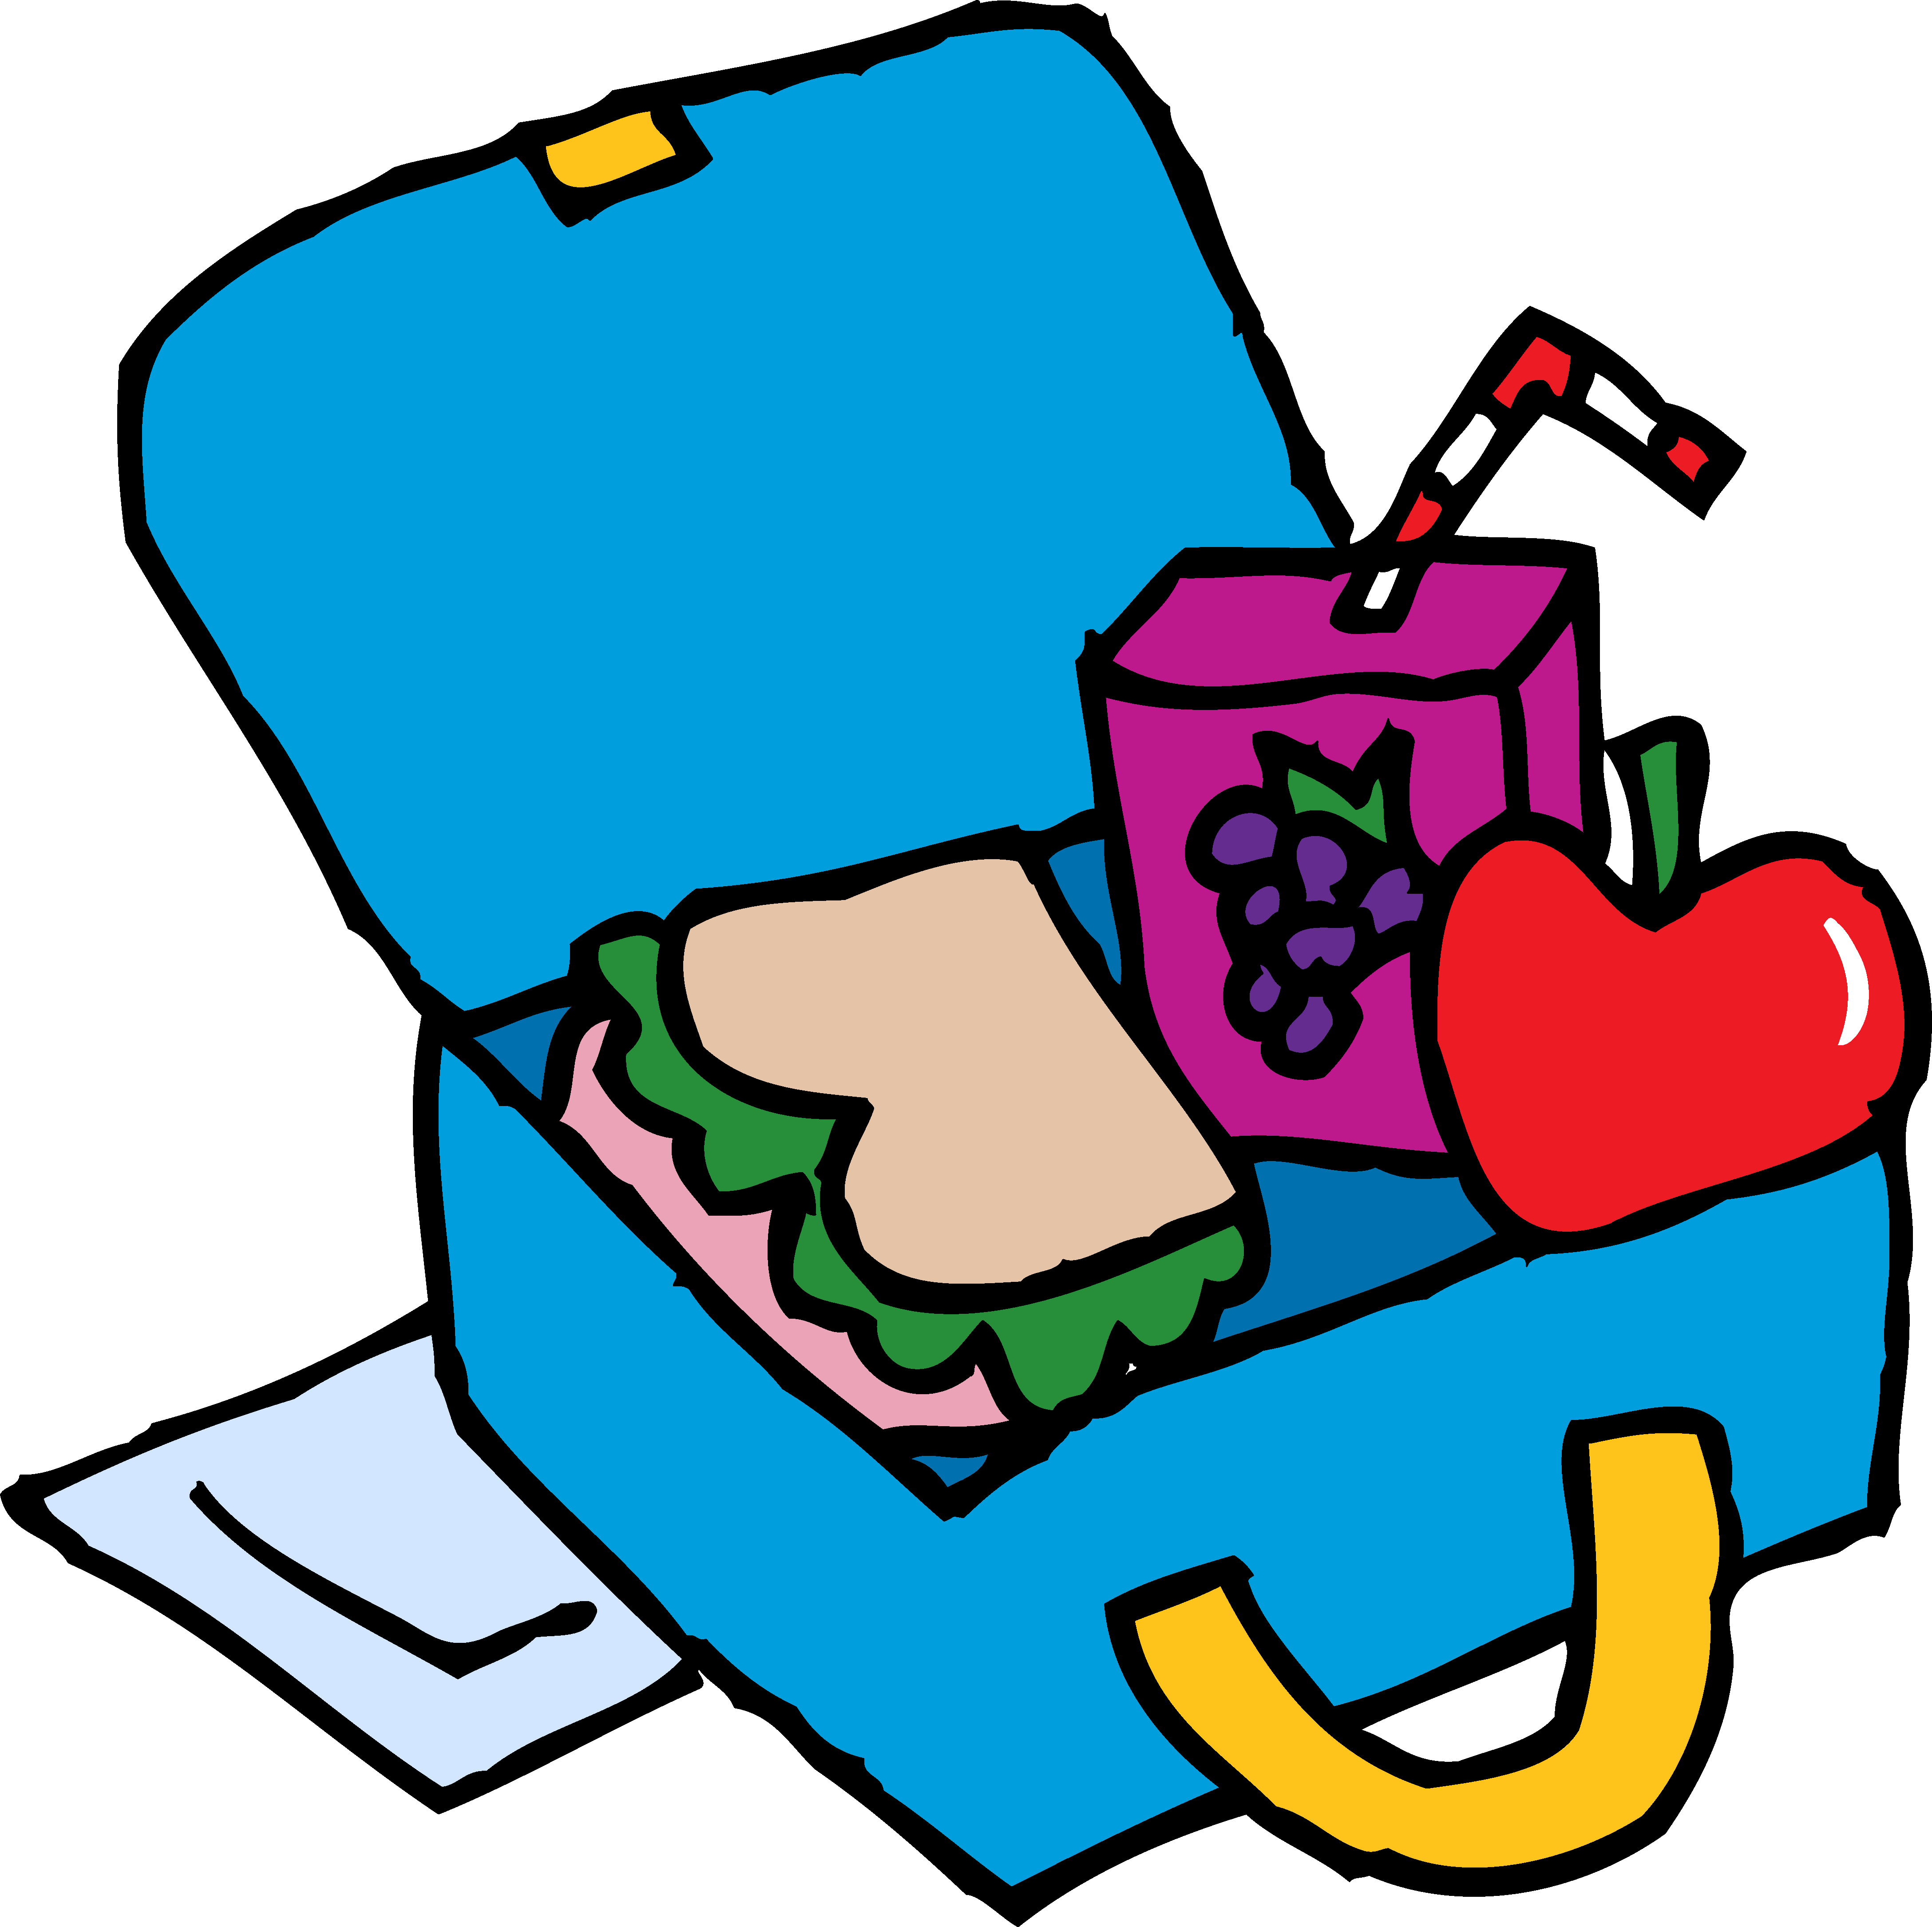 School Lunch Box Clip Art | Clipart library - Free Clipart Images